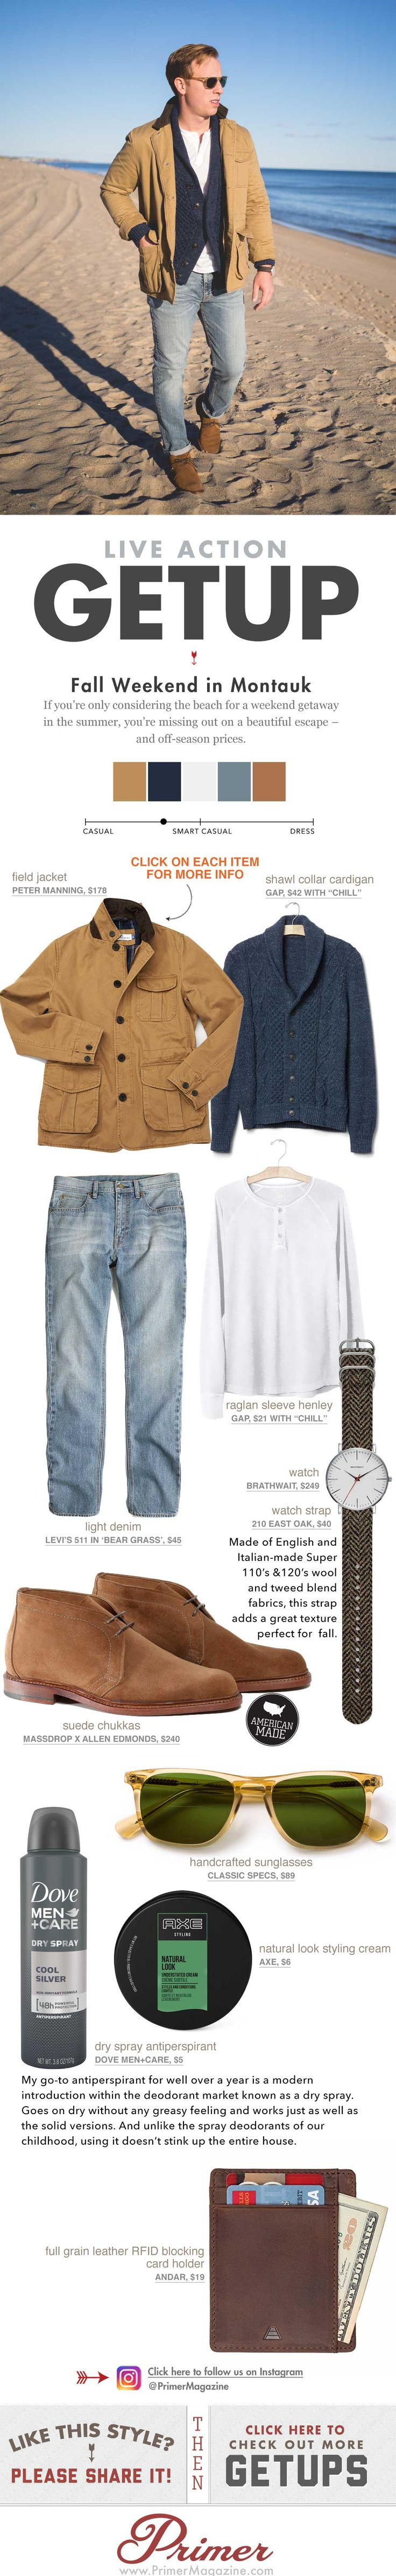 Men's Getup fall style inspiration from Primer Magazine